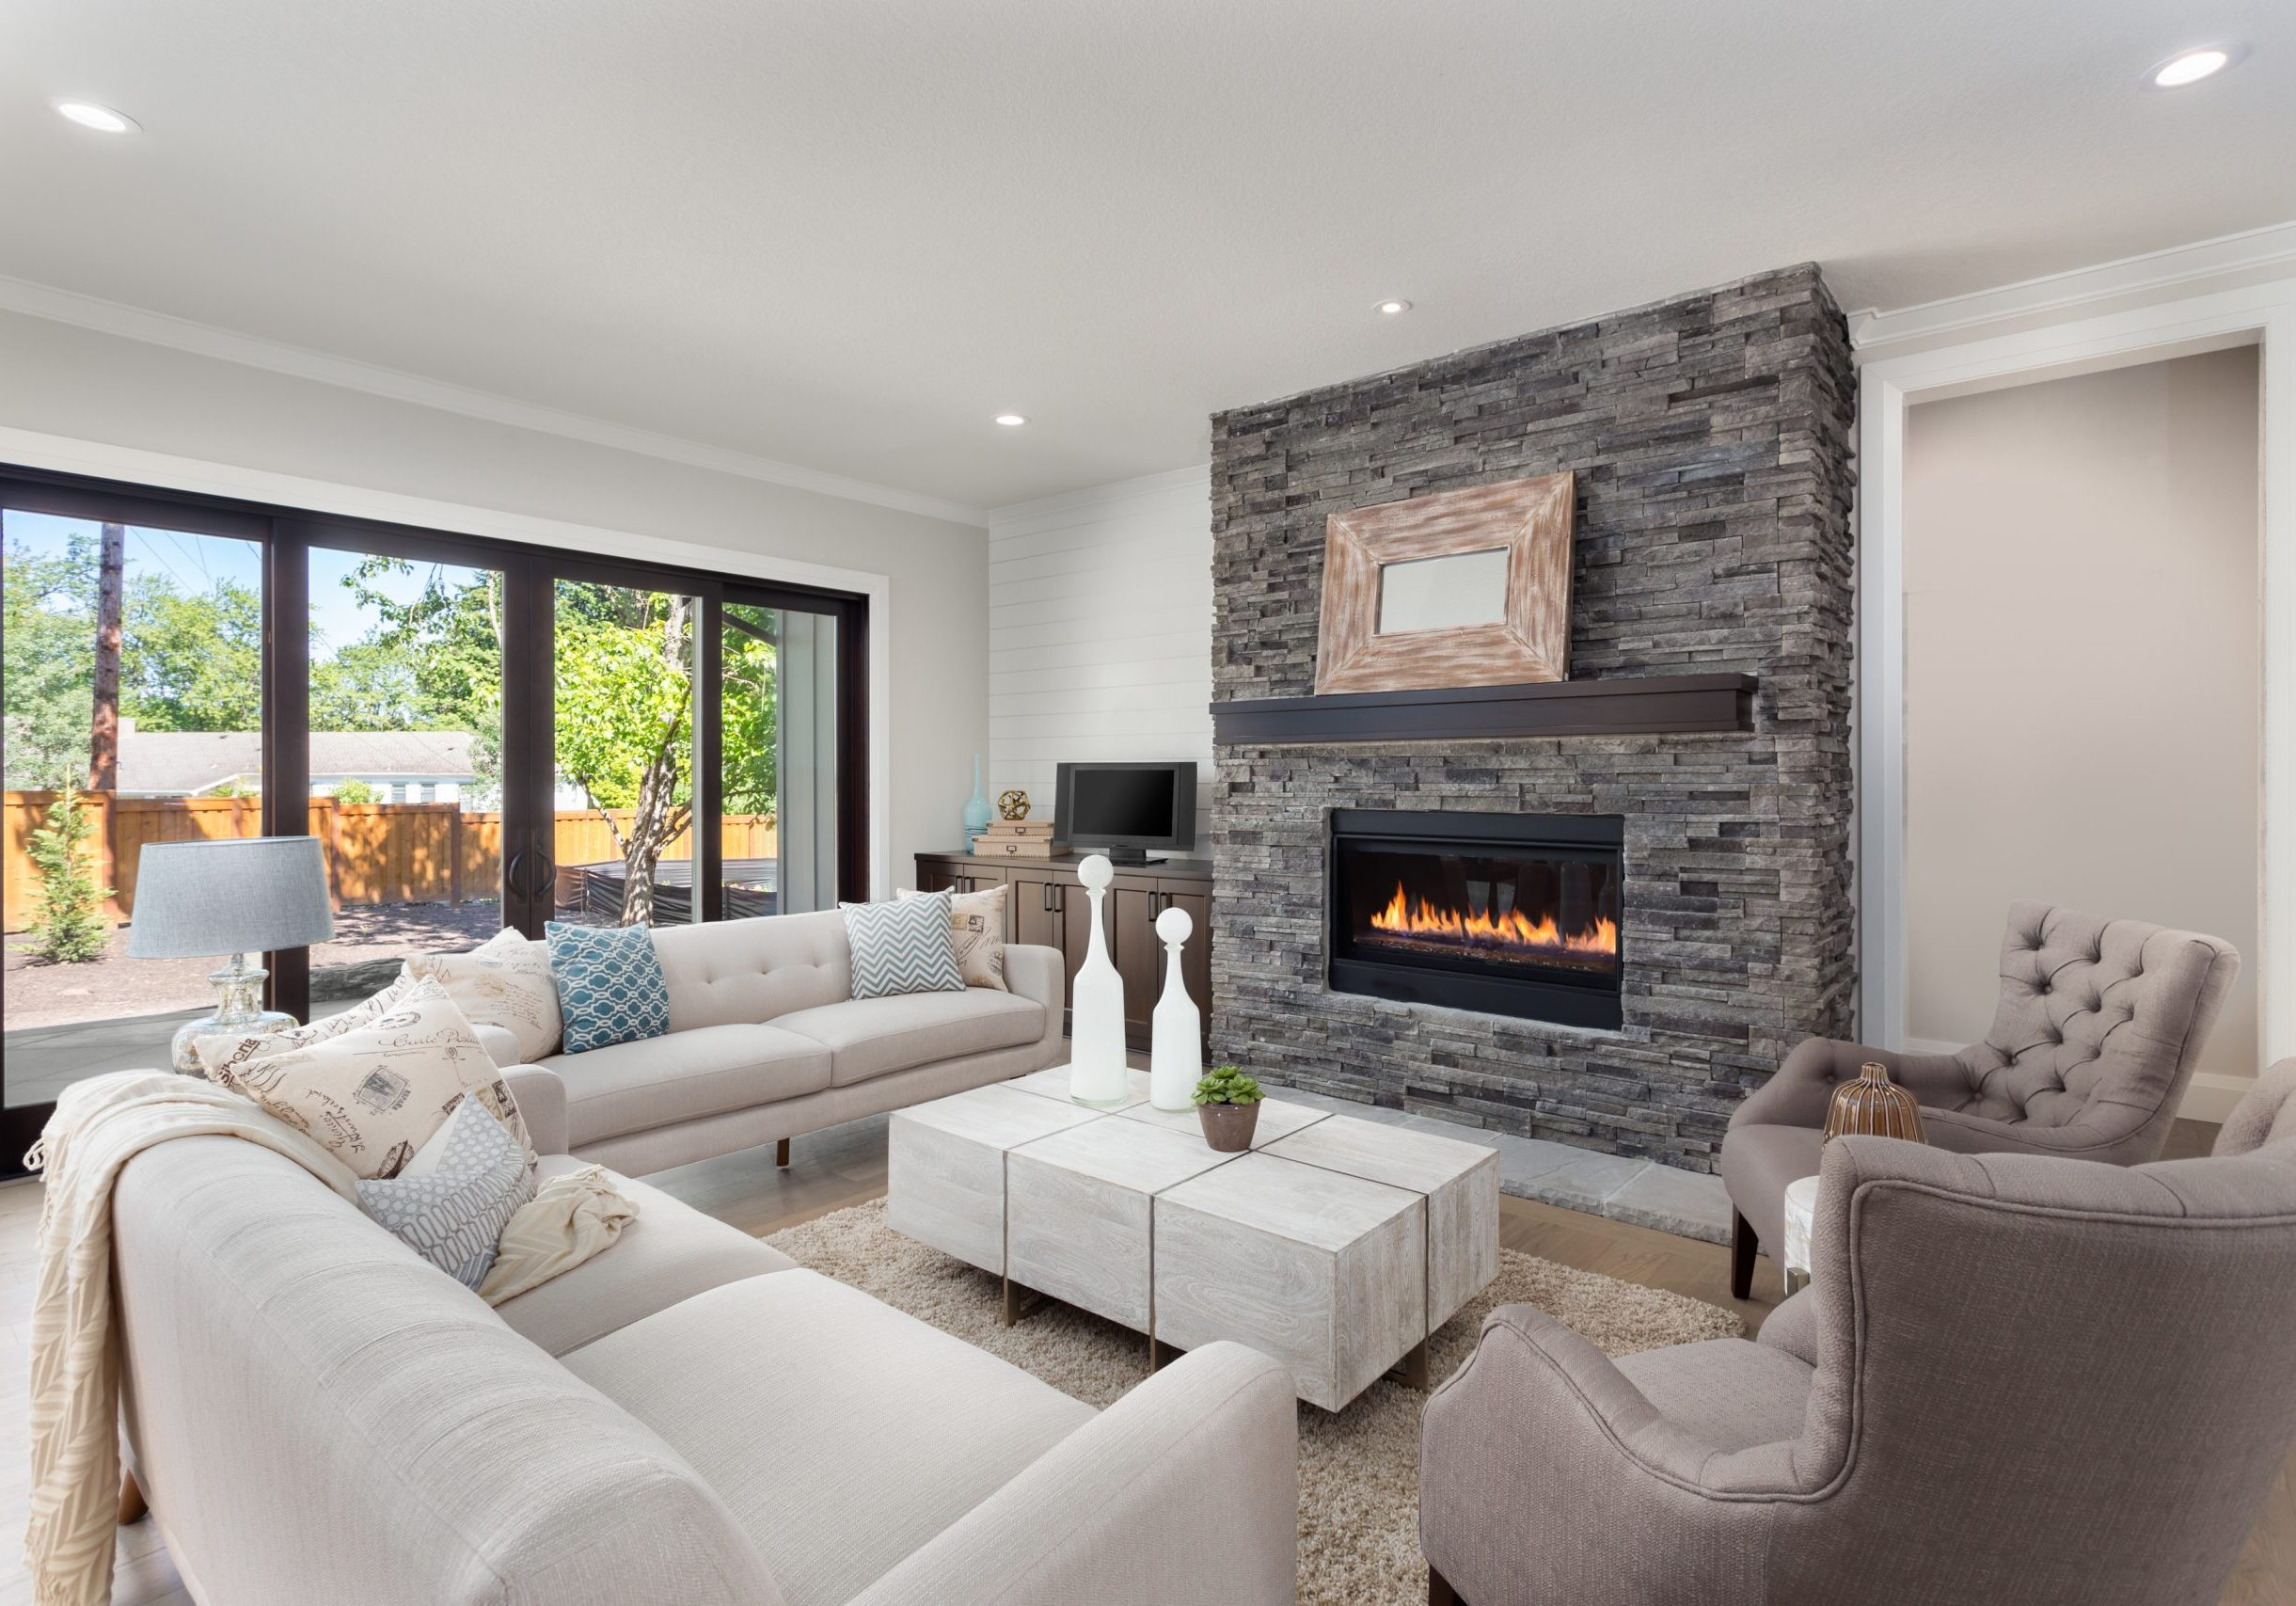 Beautiful Living Room Interior in New Home with Fireplace and Hardwood Floors